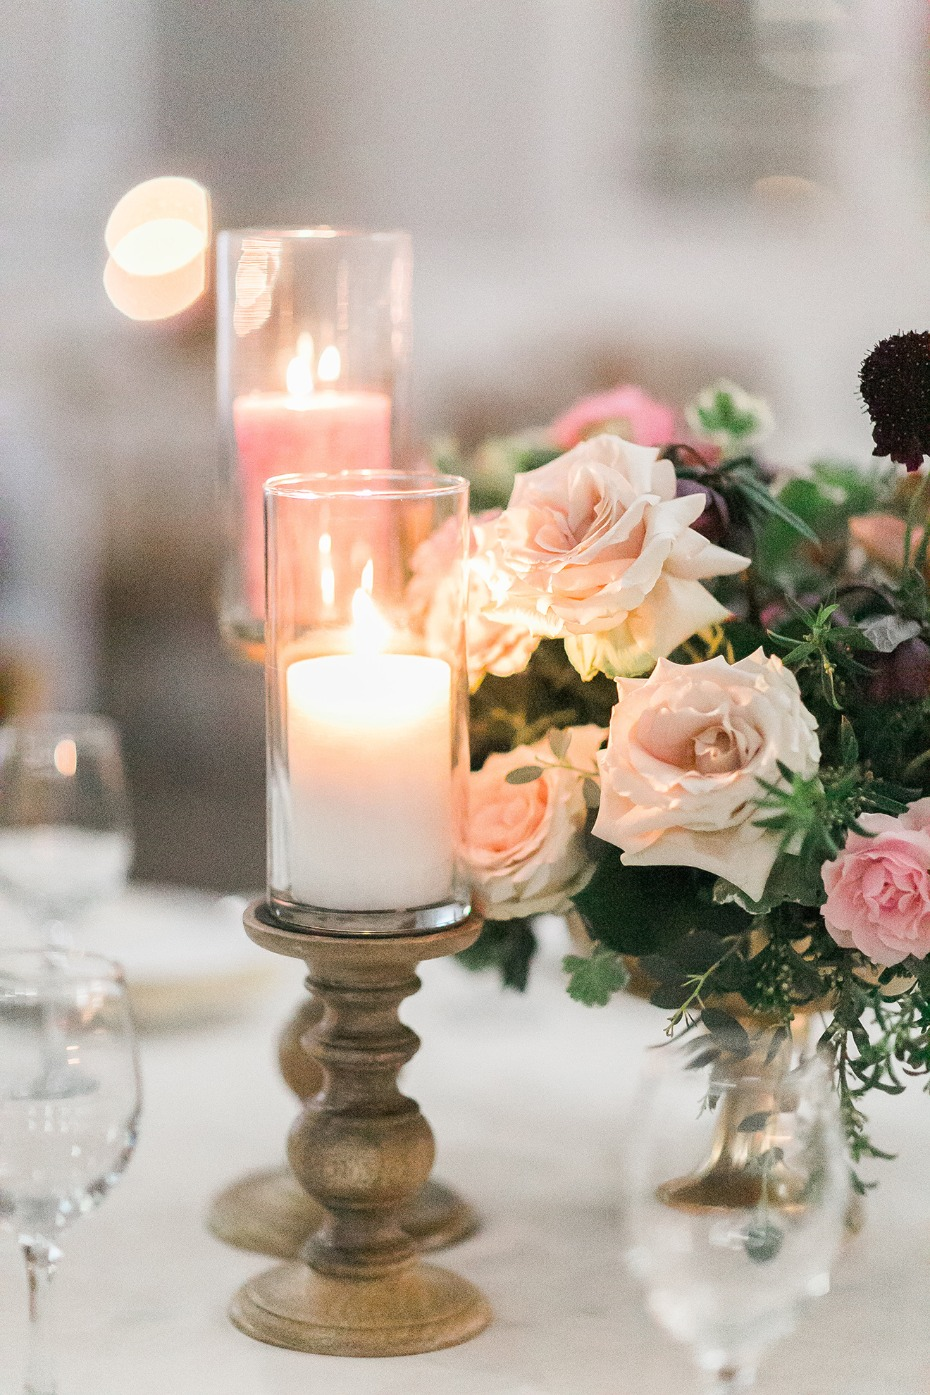 Pillar candles and roses centerpiece